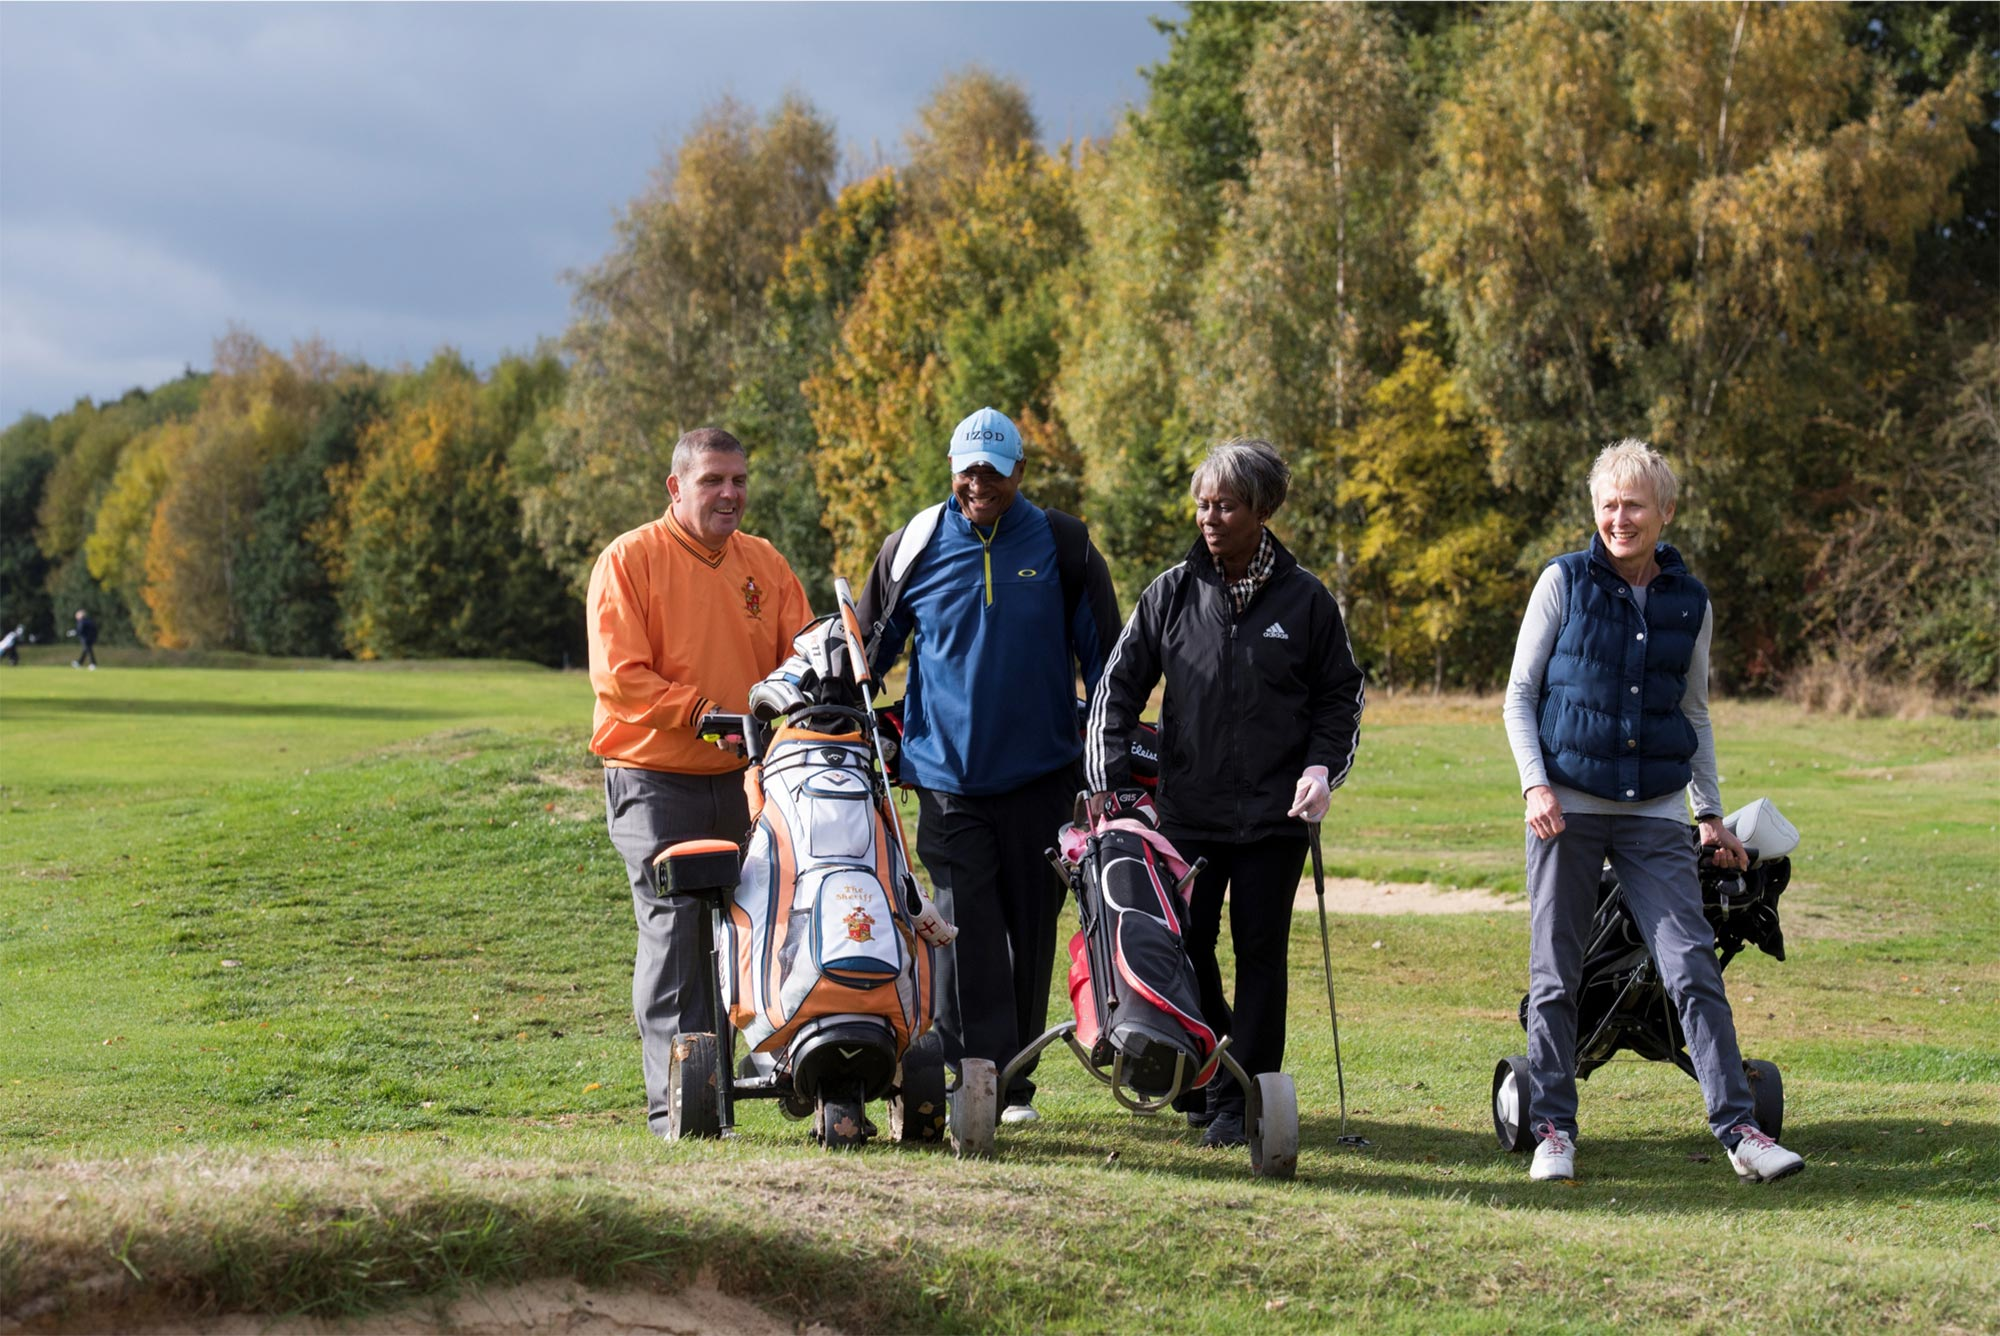 Golf lessons help improve life satisfaction and strength for patients with chronic conditions, new study shows